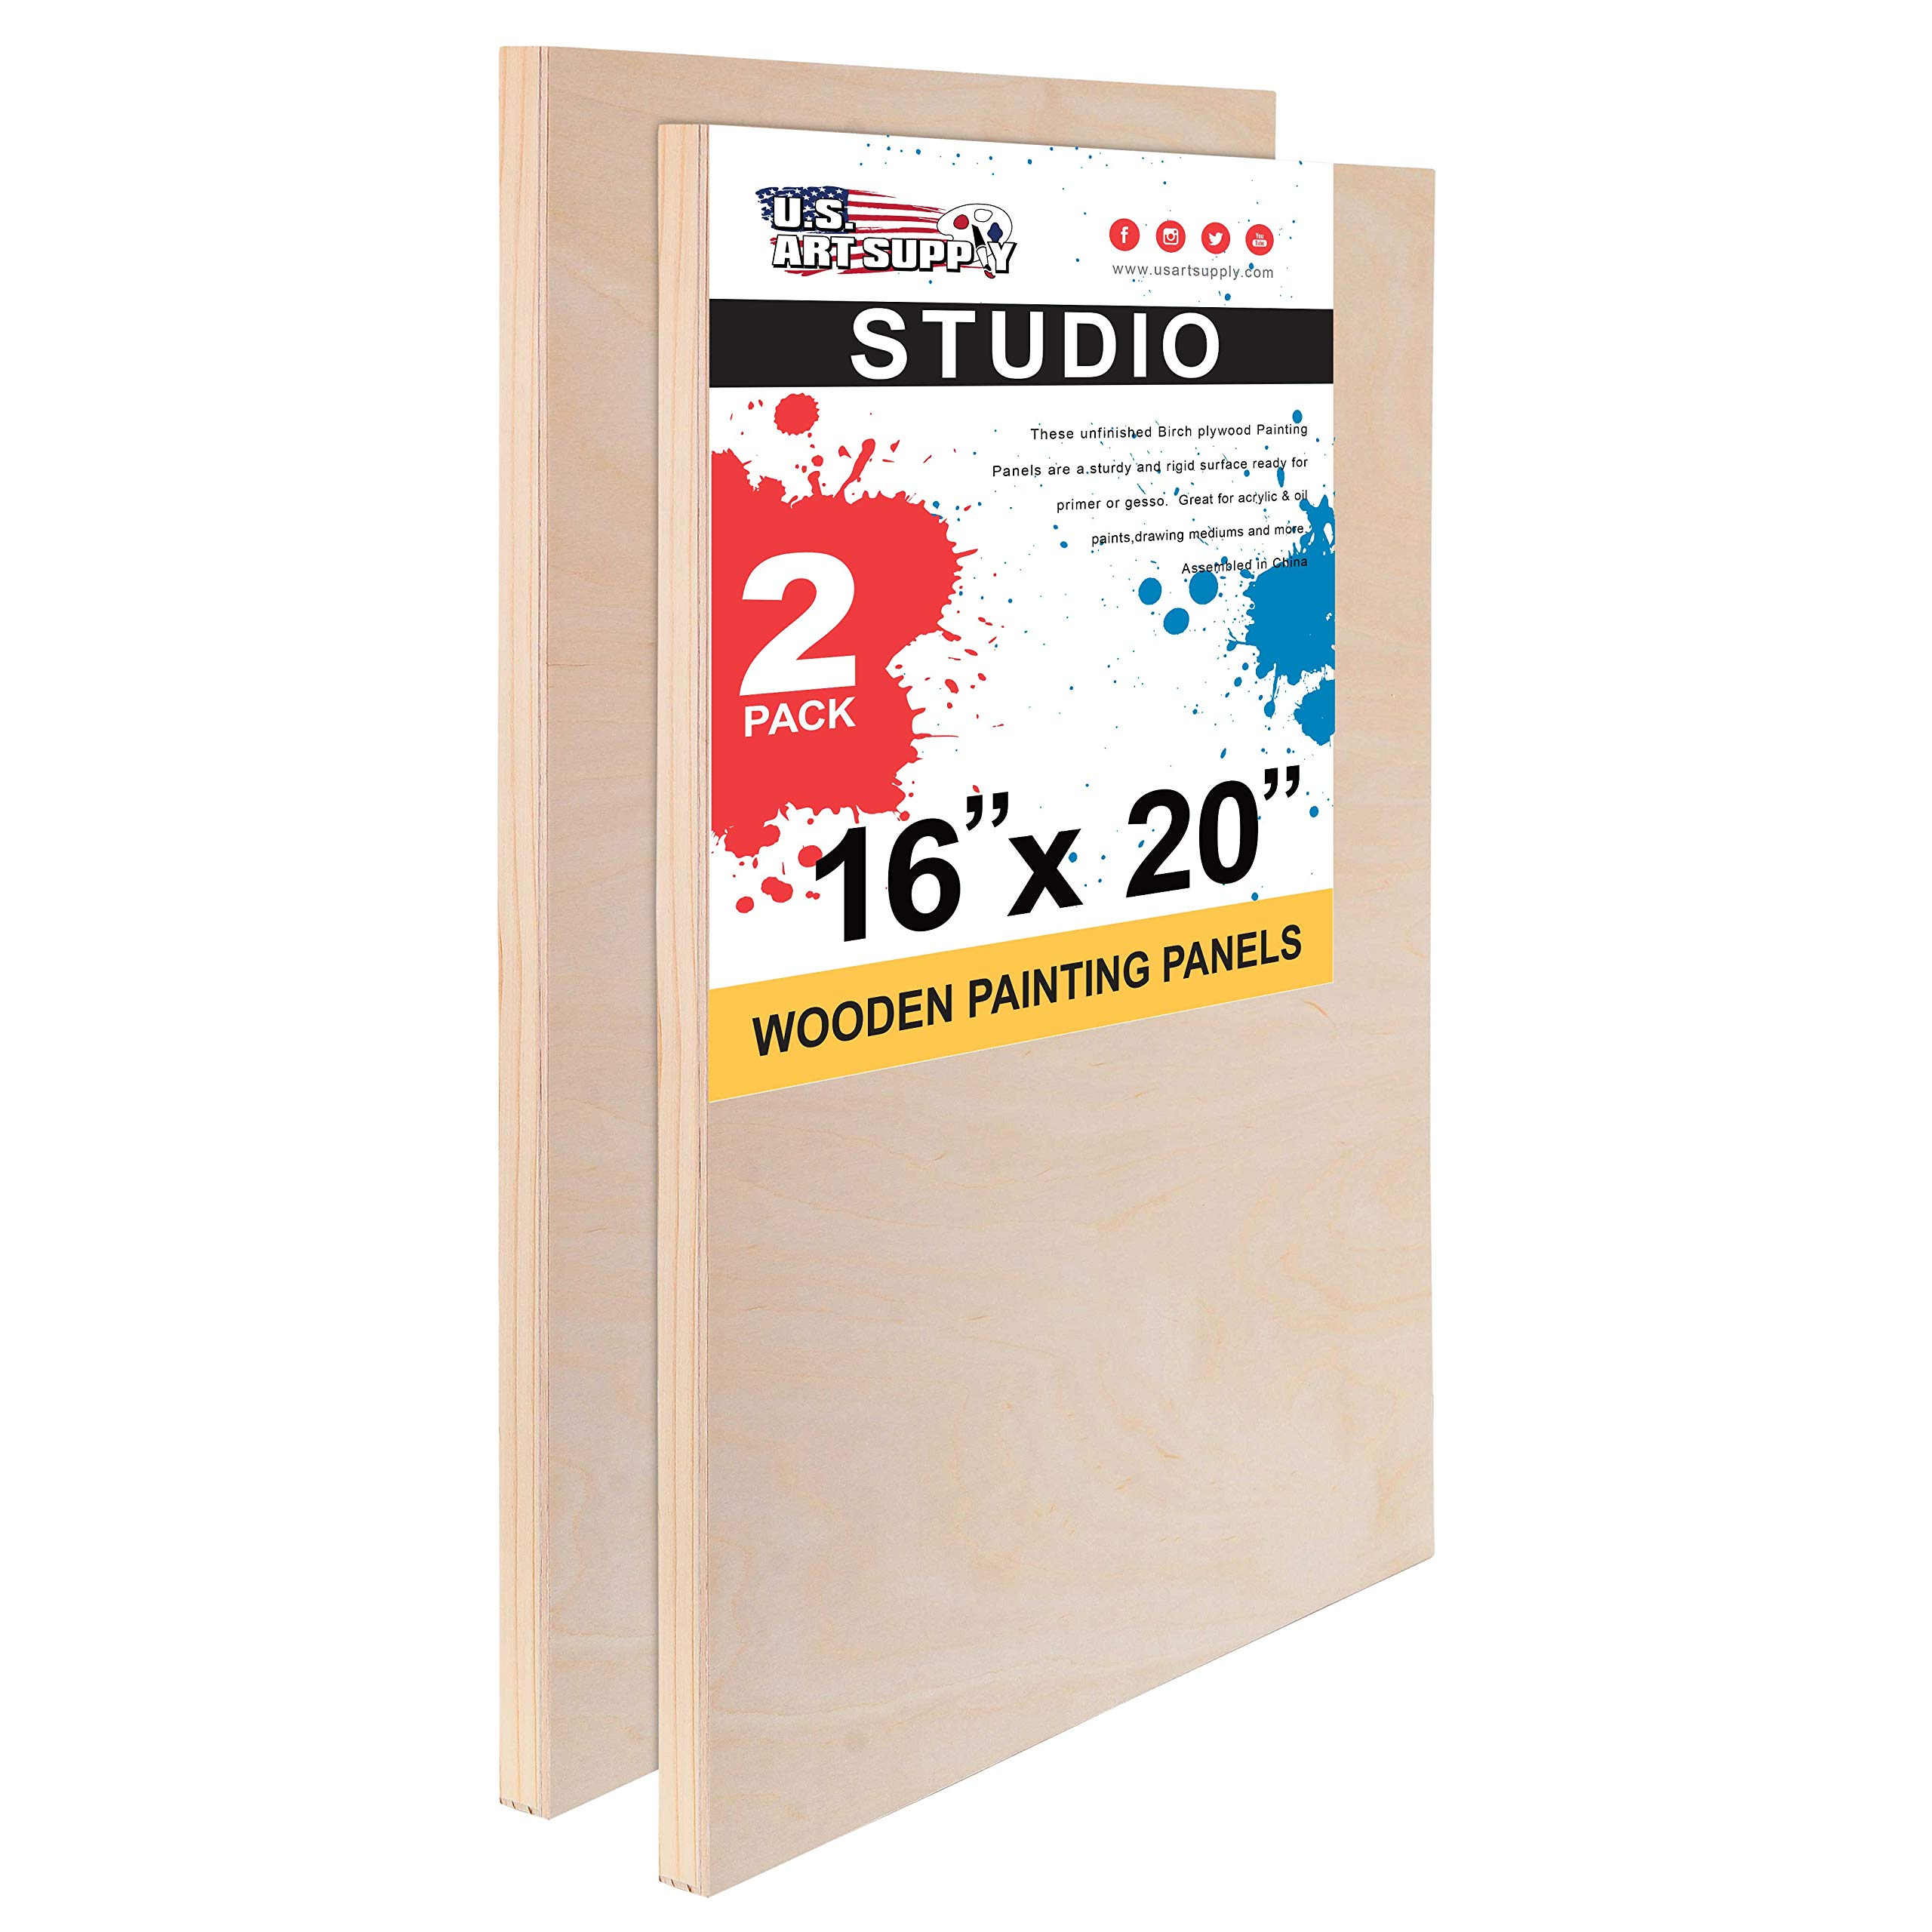 U.S. Art Supply 16'' x 20'' Birch Wood Paint Pouring Panel Boards, Studio 3/4'' Deep Cradle (Pack of 2) - Artist Wooden Wall Canvases - Painting Mixed-Media Craft, Acrylic, Oil, Watercolor, Encaustic by U.S. Art Supply